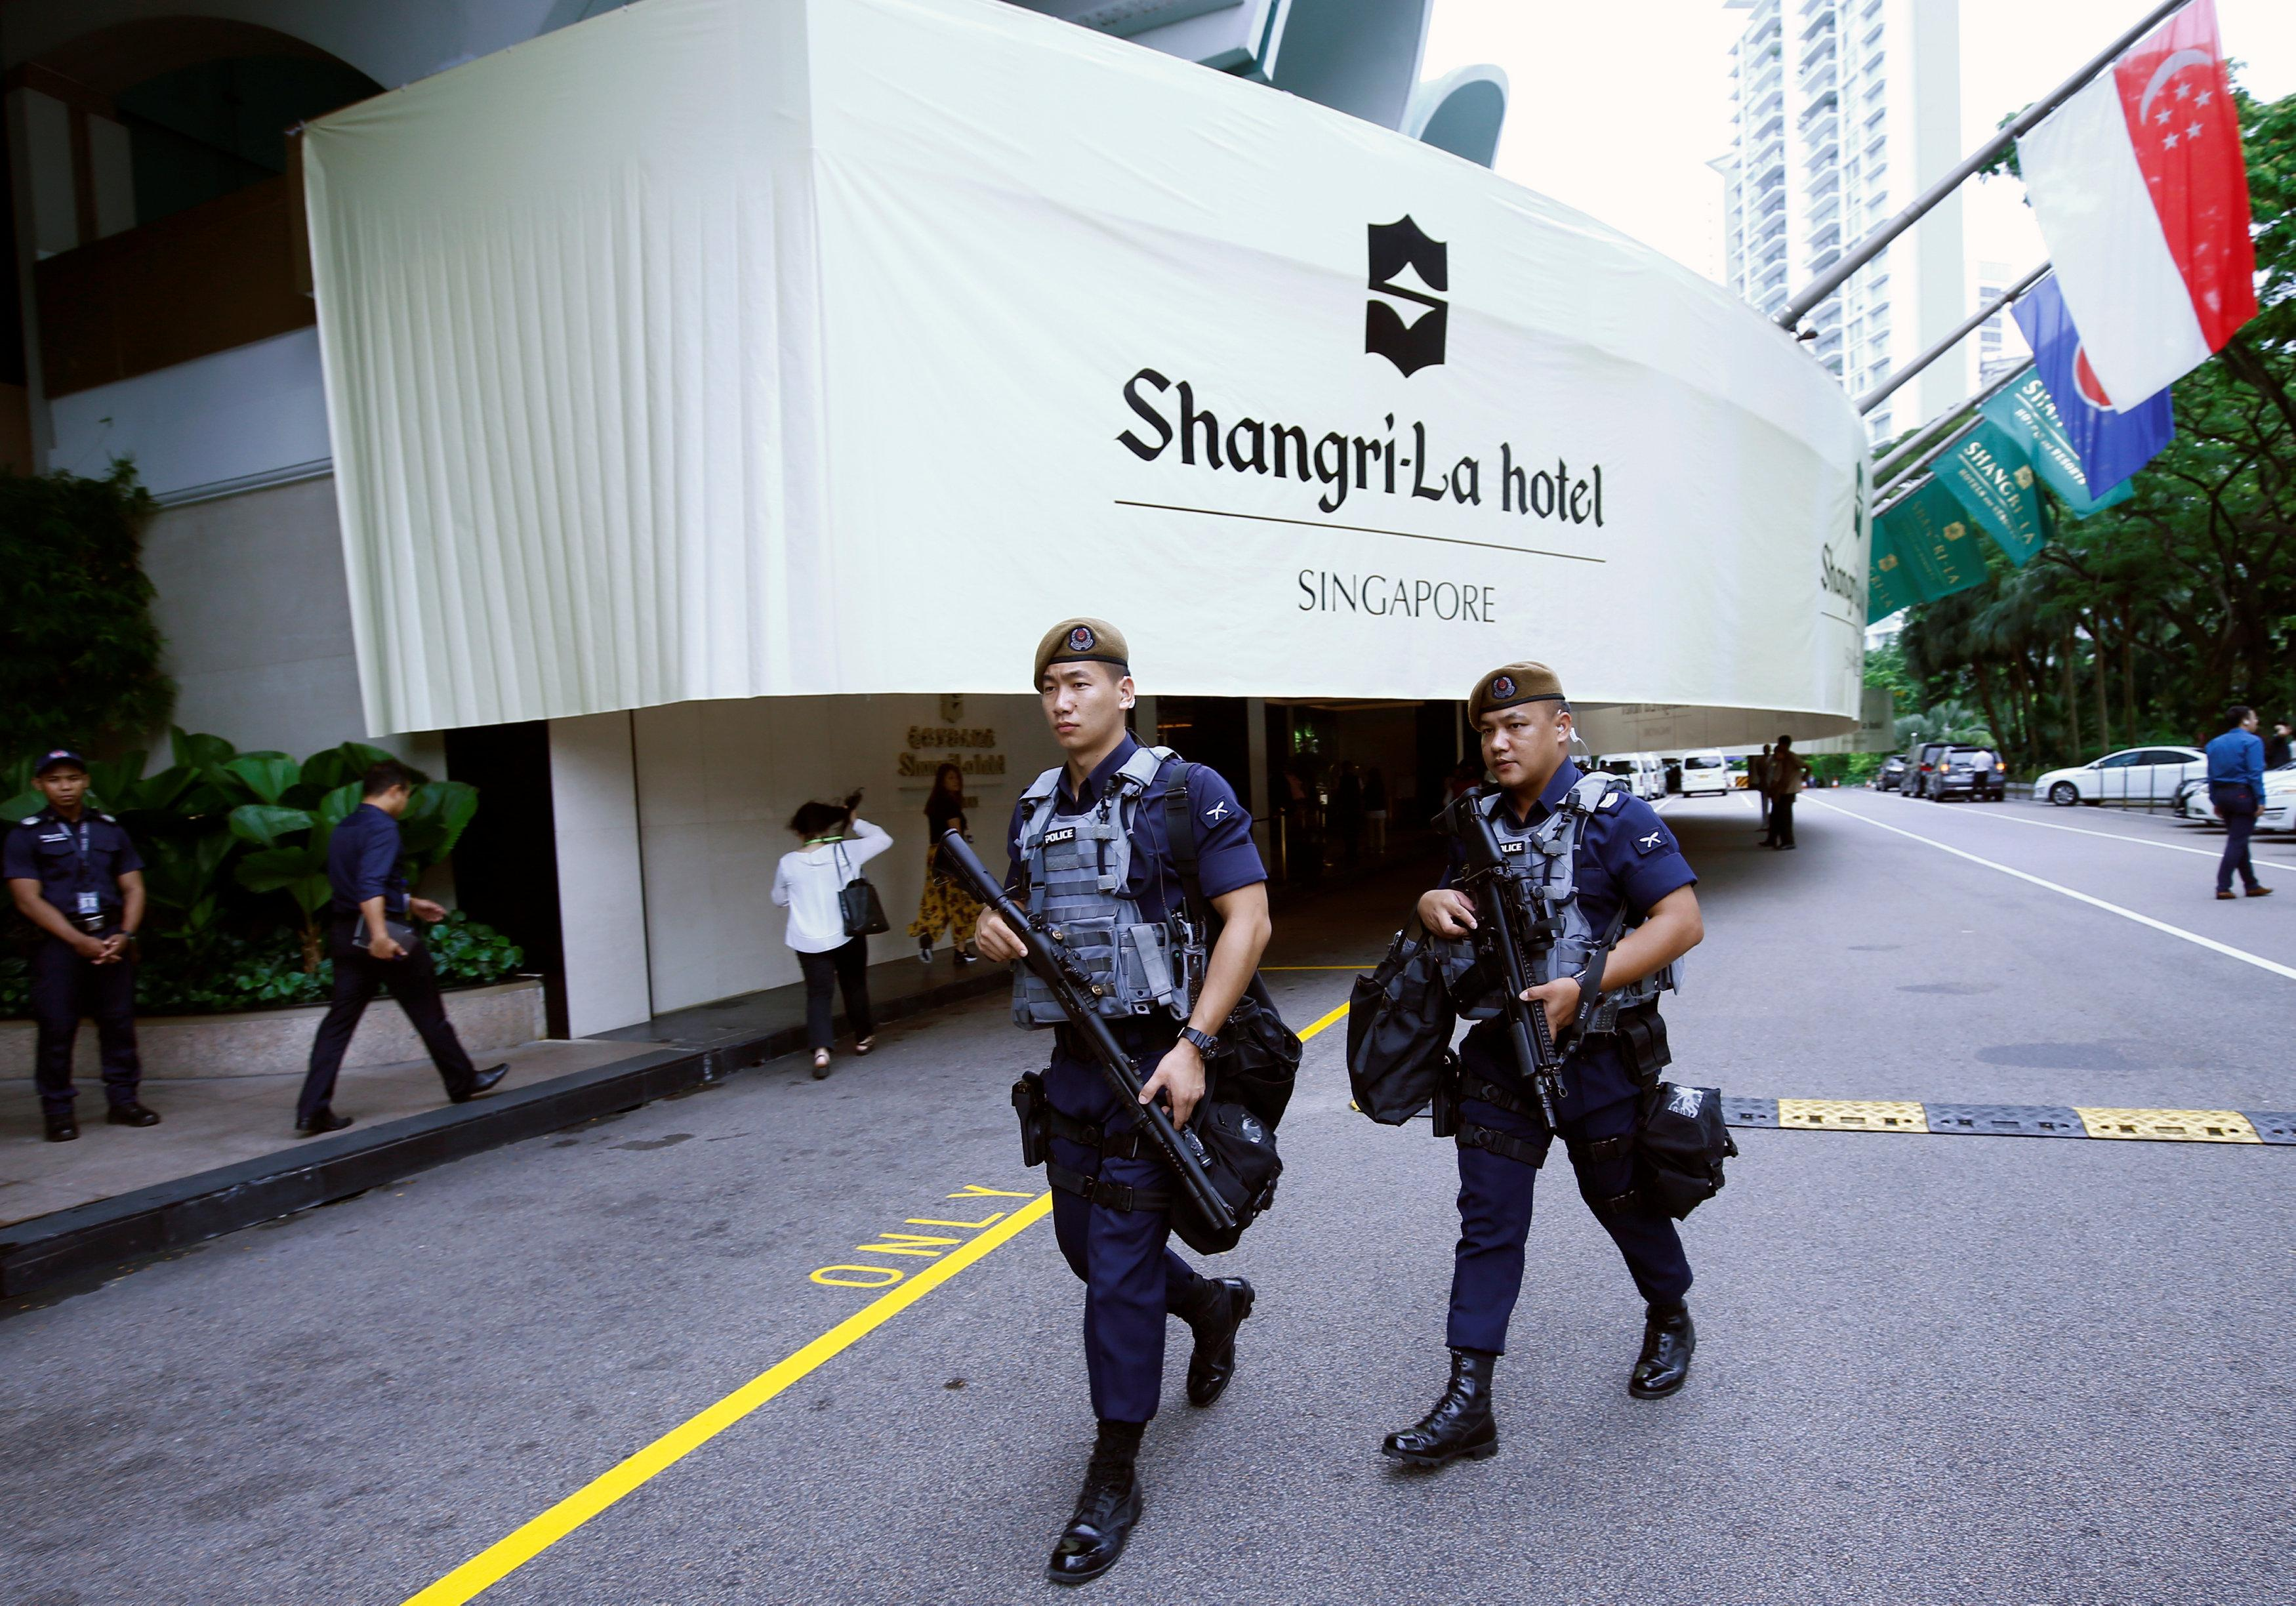 The Singapore hotel where top brass, dealers and spies rub shoulders